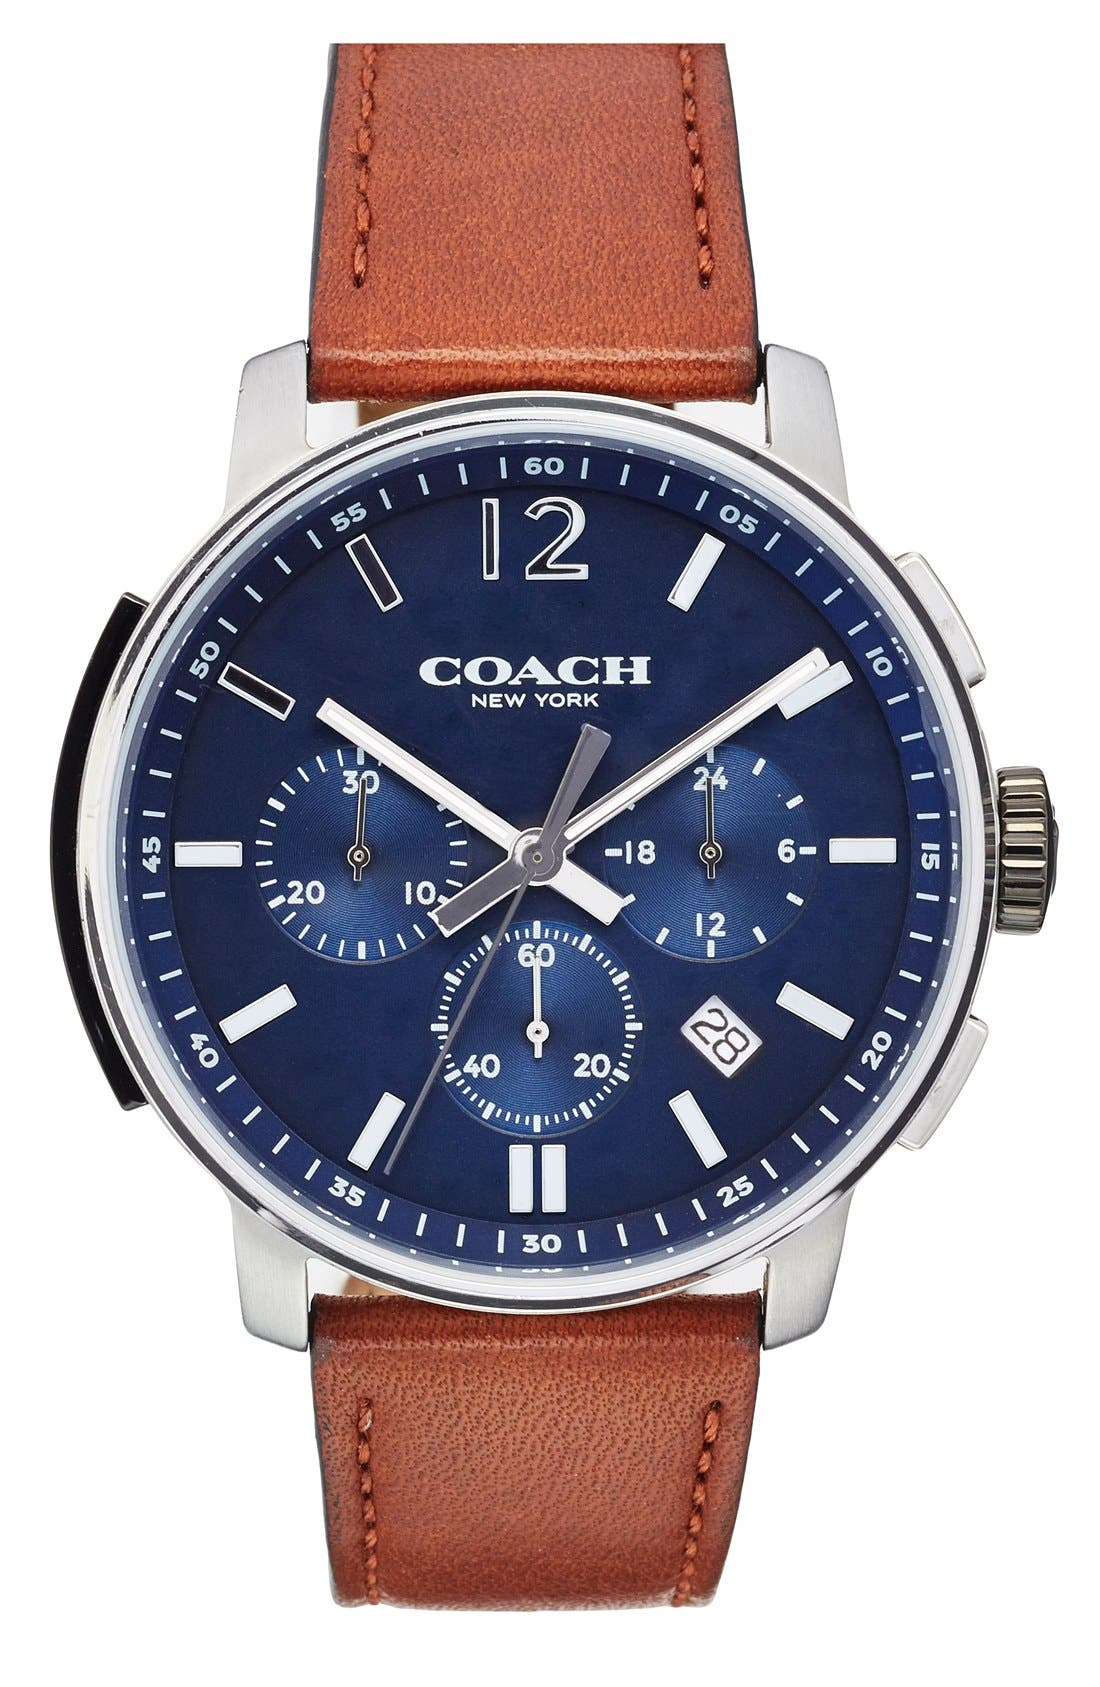 Main Image - Coach 'Bleecker' Chronograph Leather Strap Watch, 44mm